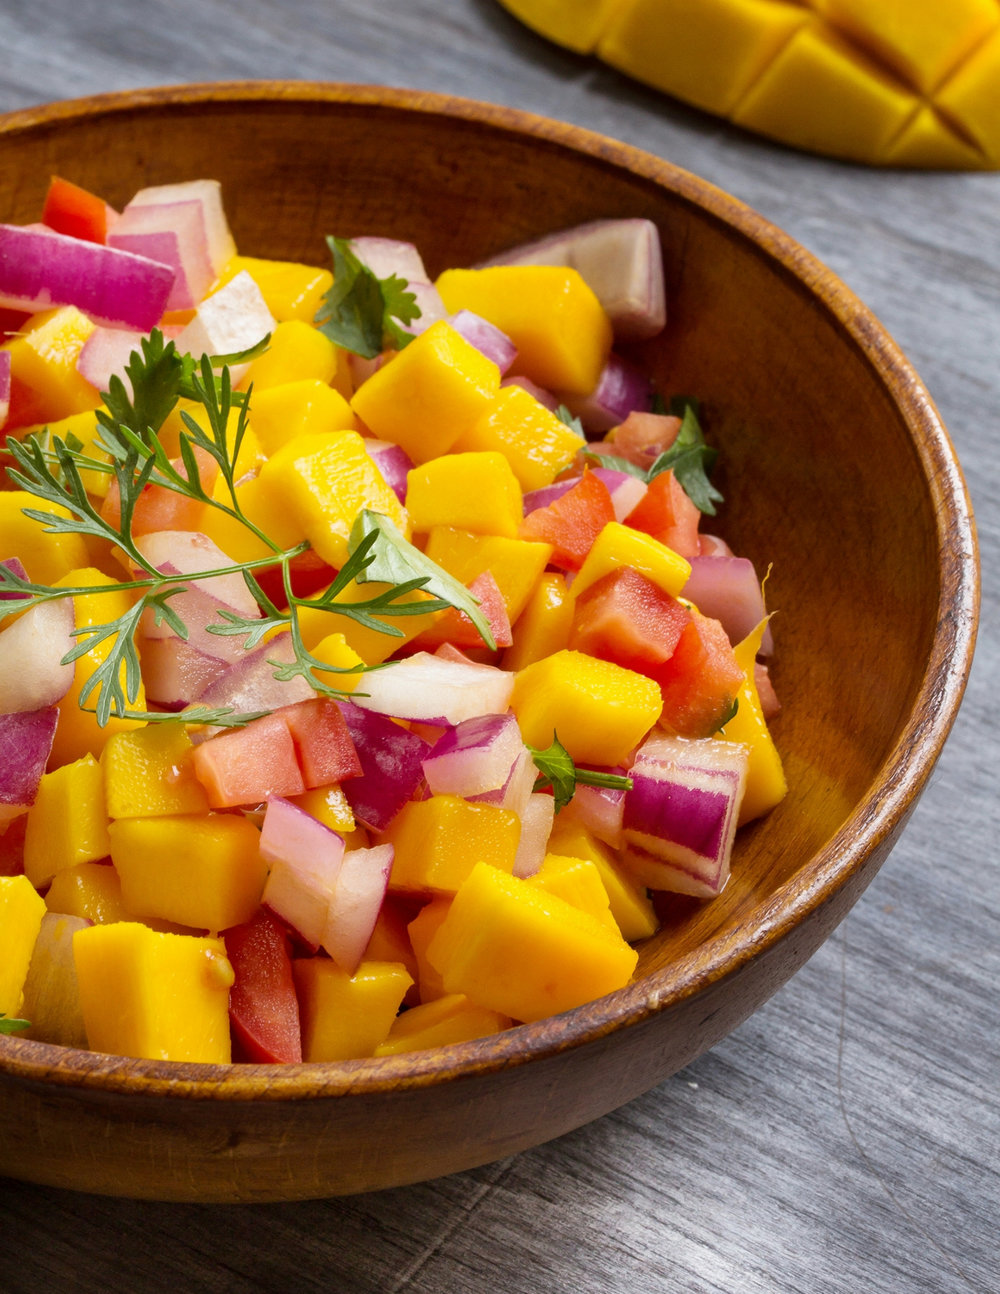 Mango Papaya Salsa - 1 Mango, cubed - 1/2″ chunks1 Papaya, seeded & cubed - 1/2″ chunks1/2 Medium red onion -  finely chopped1 Medium jalapeno, seeds removed &  chopped1 Bunch of cilantro - leaves only - finely chopped1 lime - Juicedsalt & pepper to tasteSimply stir ingredients in a medium bowl and serve with grilled fish (or use as a dip.)